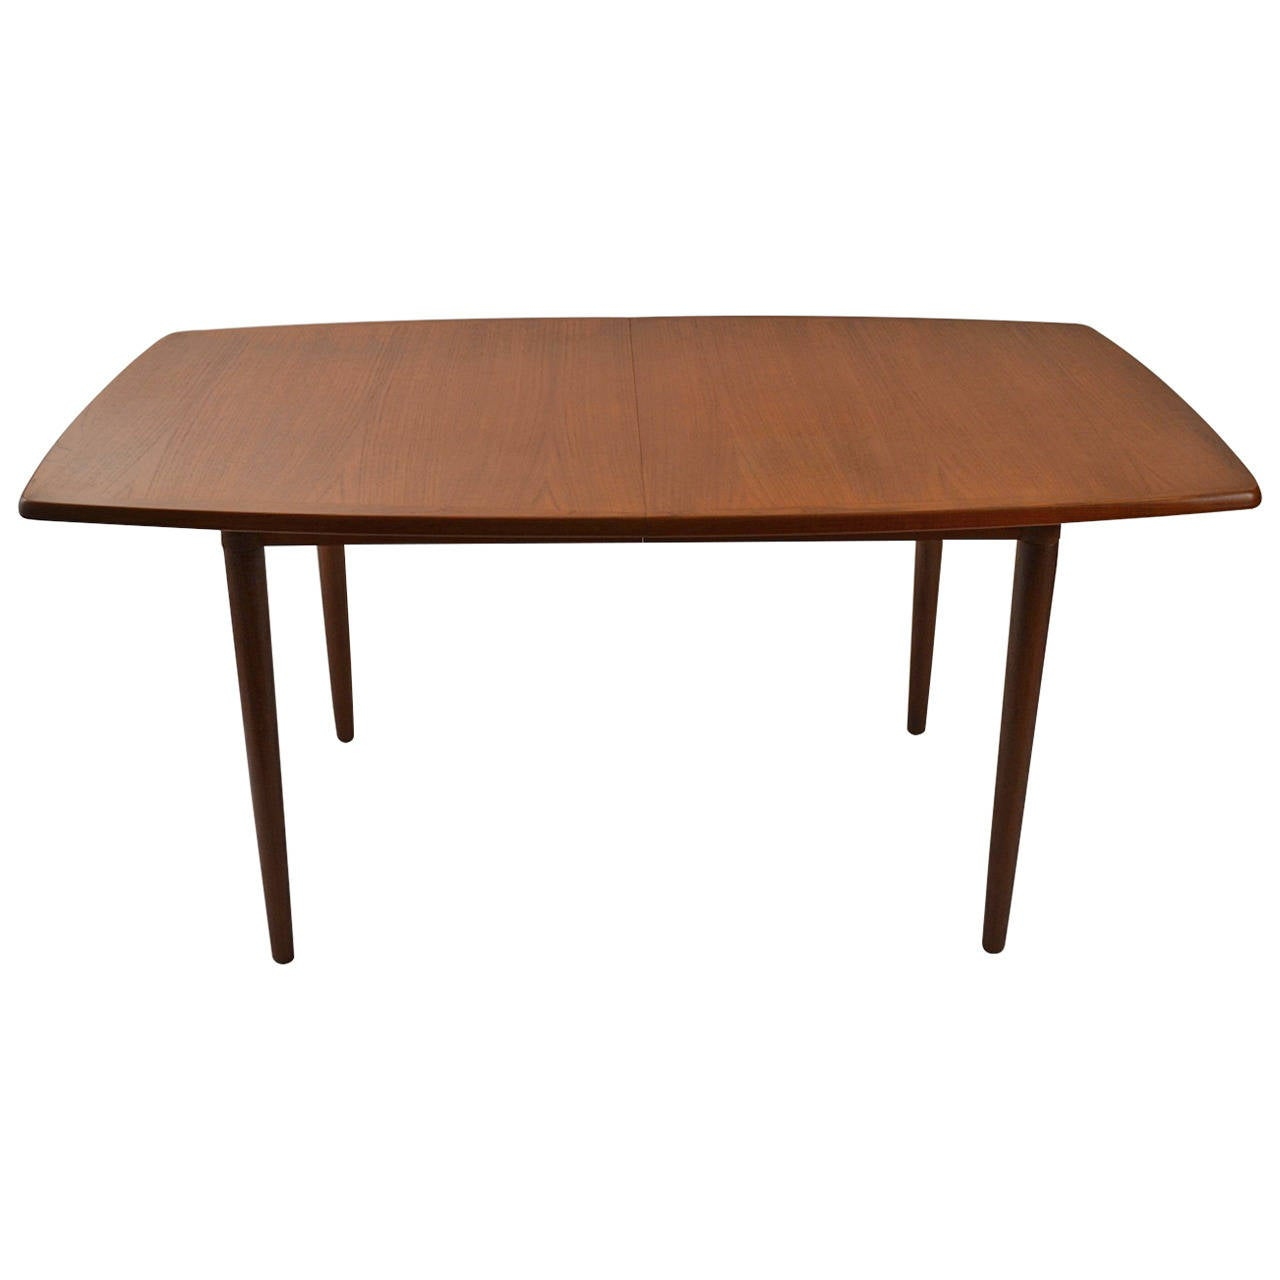 Danish modern teak dining table with two leaves at 1stdibs for Dining room tables with leaves